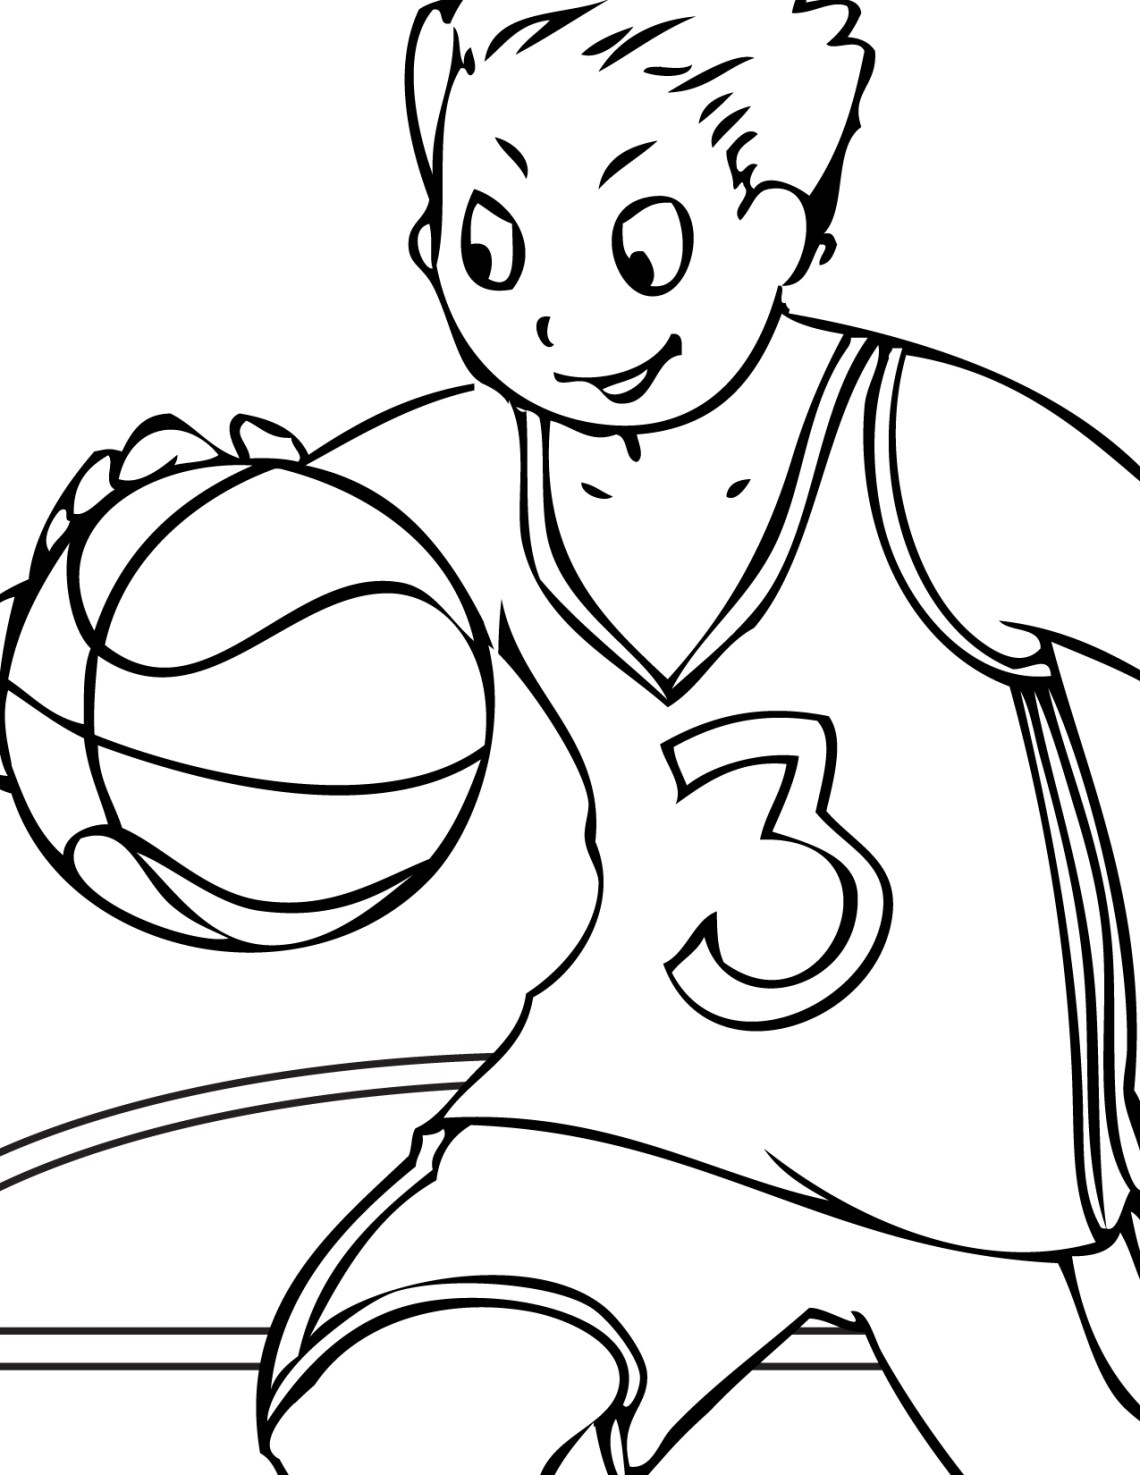 Free Printable Volleyball Coloring Pages For Kids | free colouring pages for toddlers